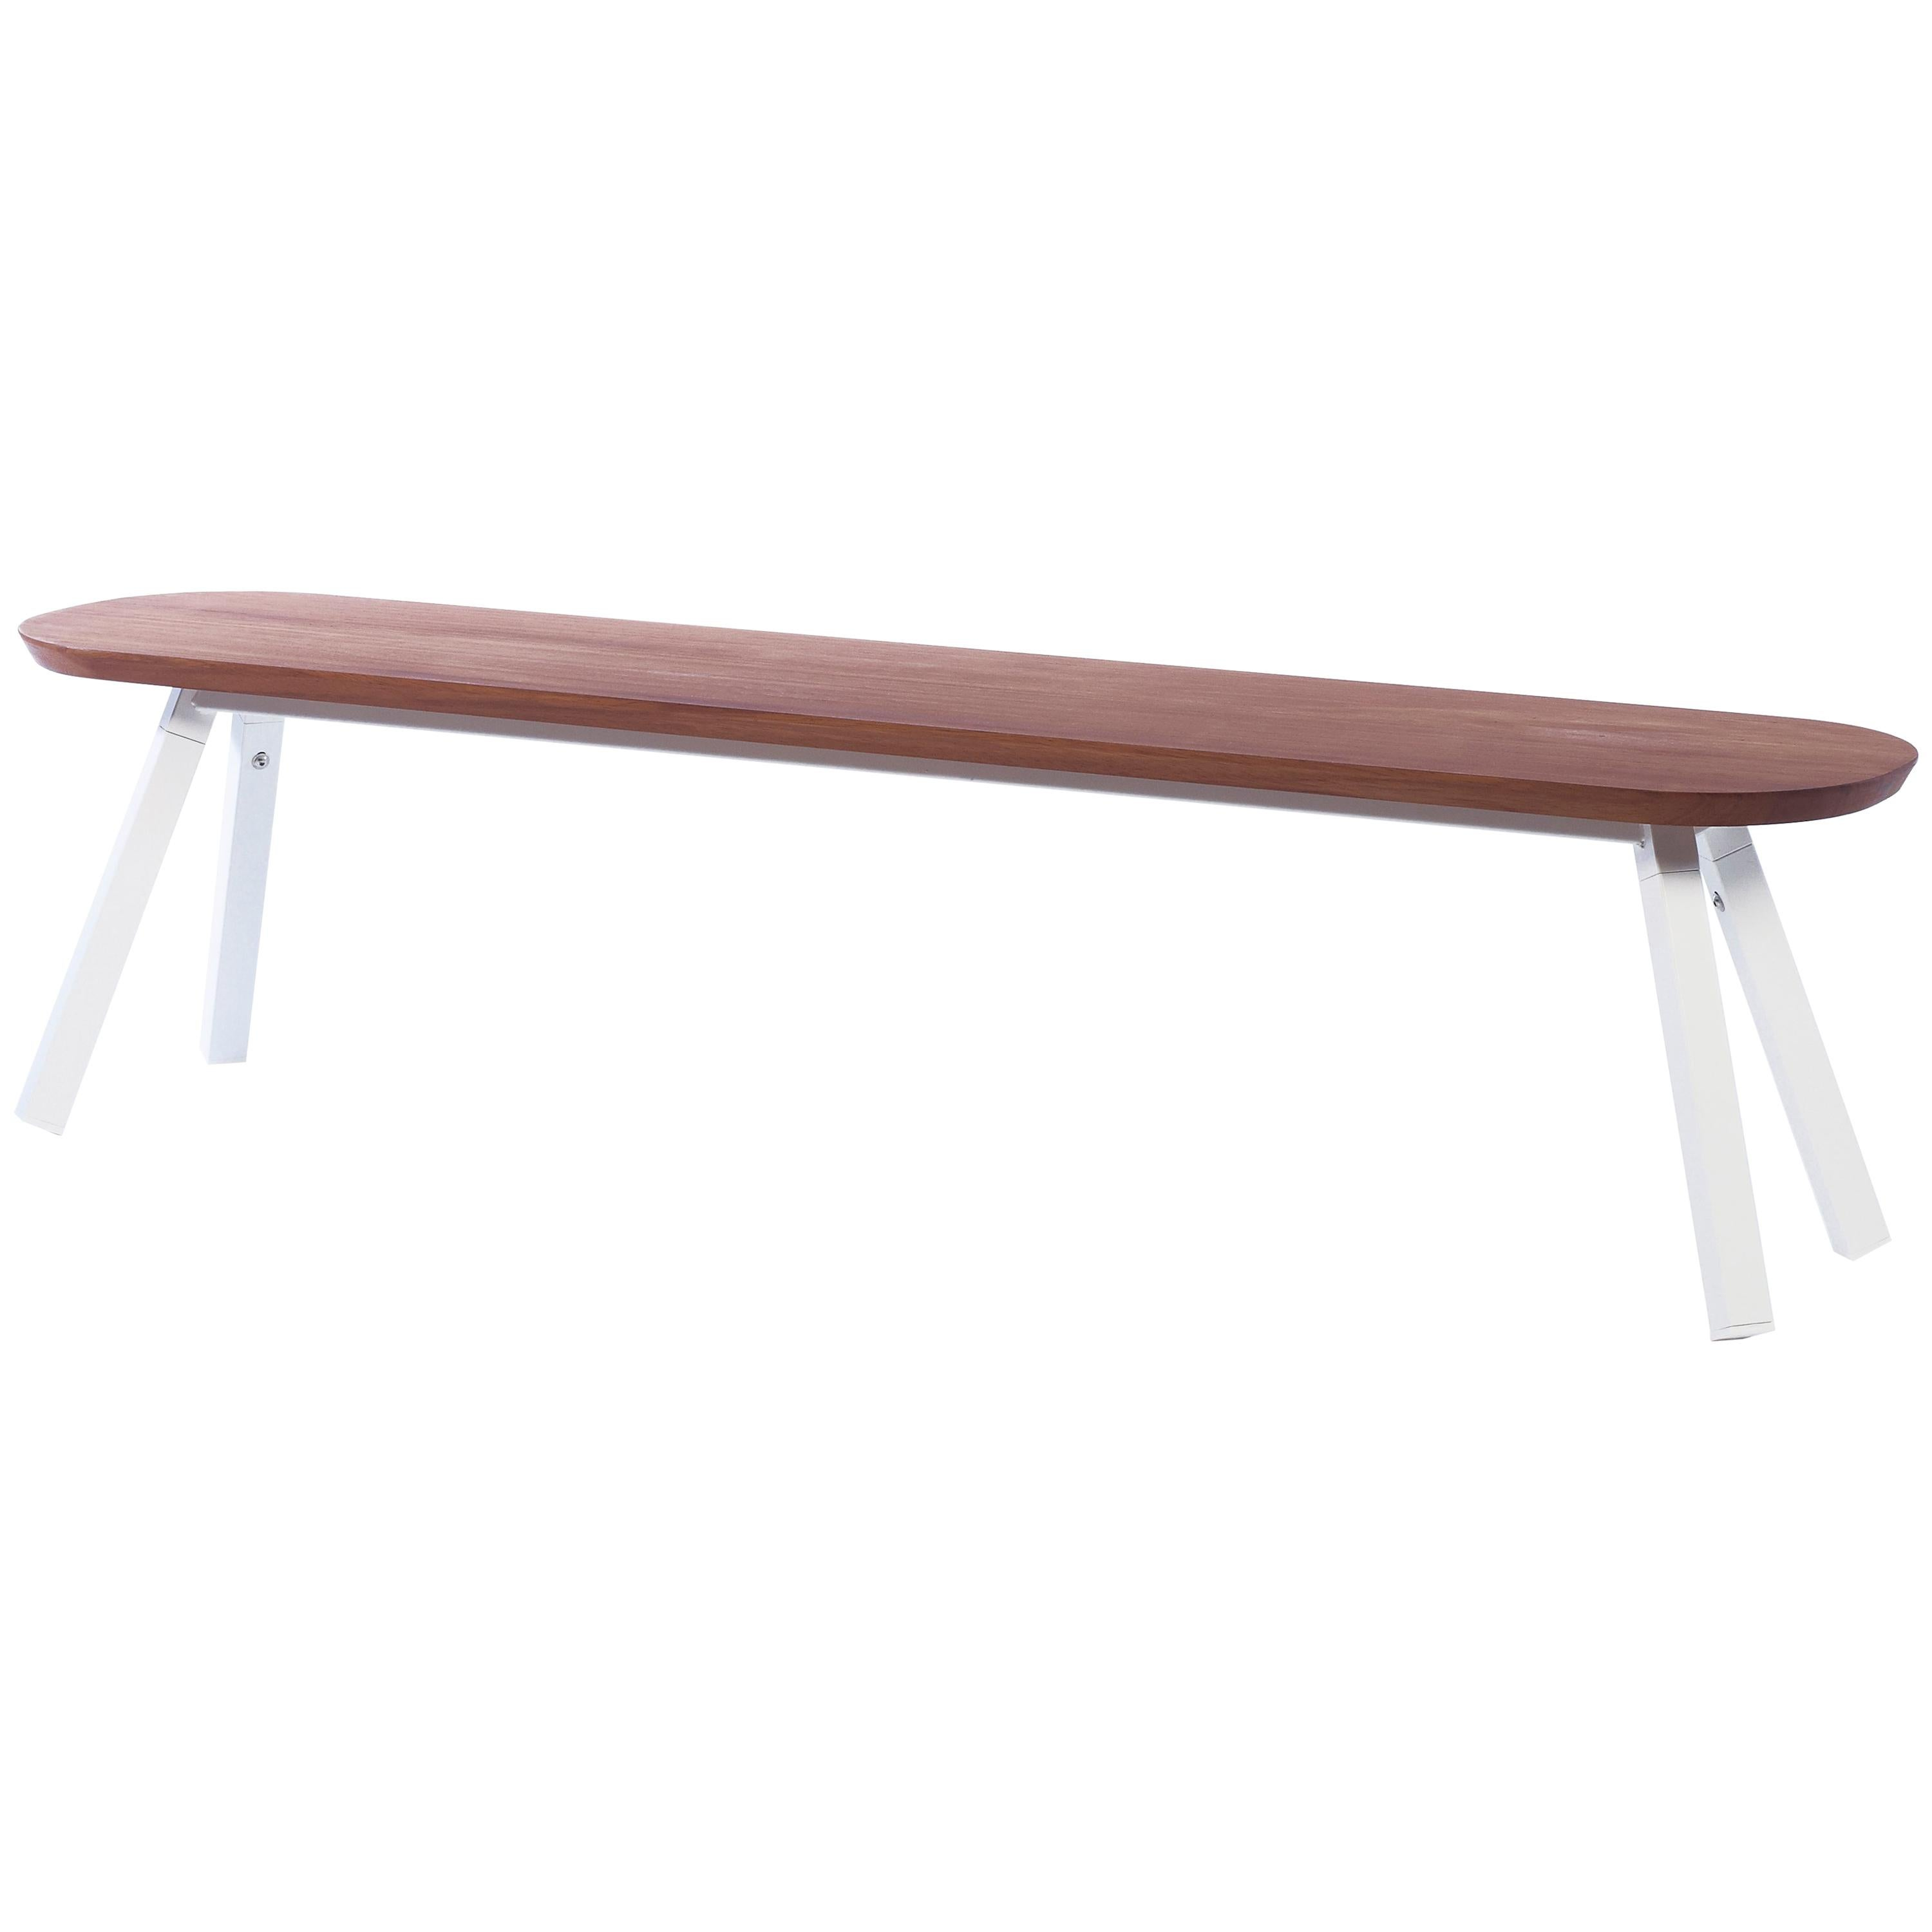 RS Barcelona You and Me 180 Bench in Iroko with White Legs by A.P.O